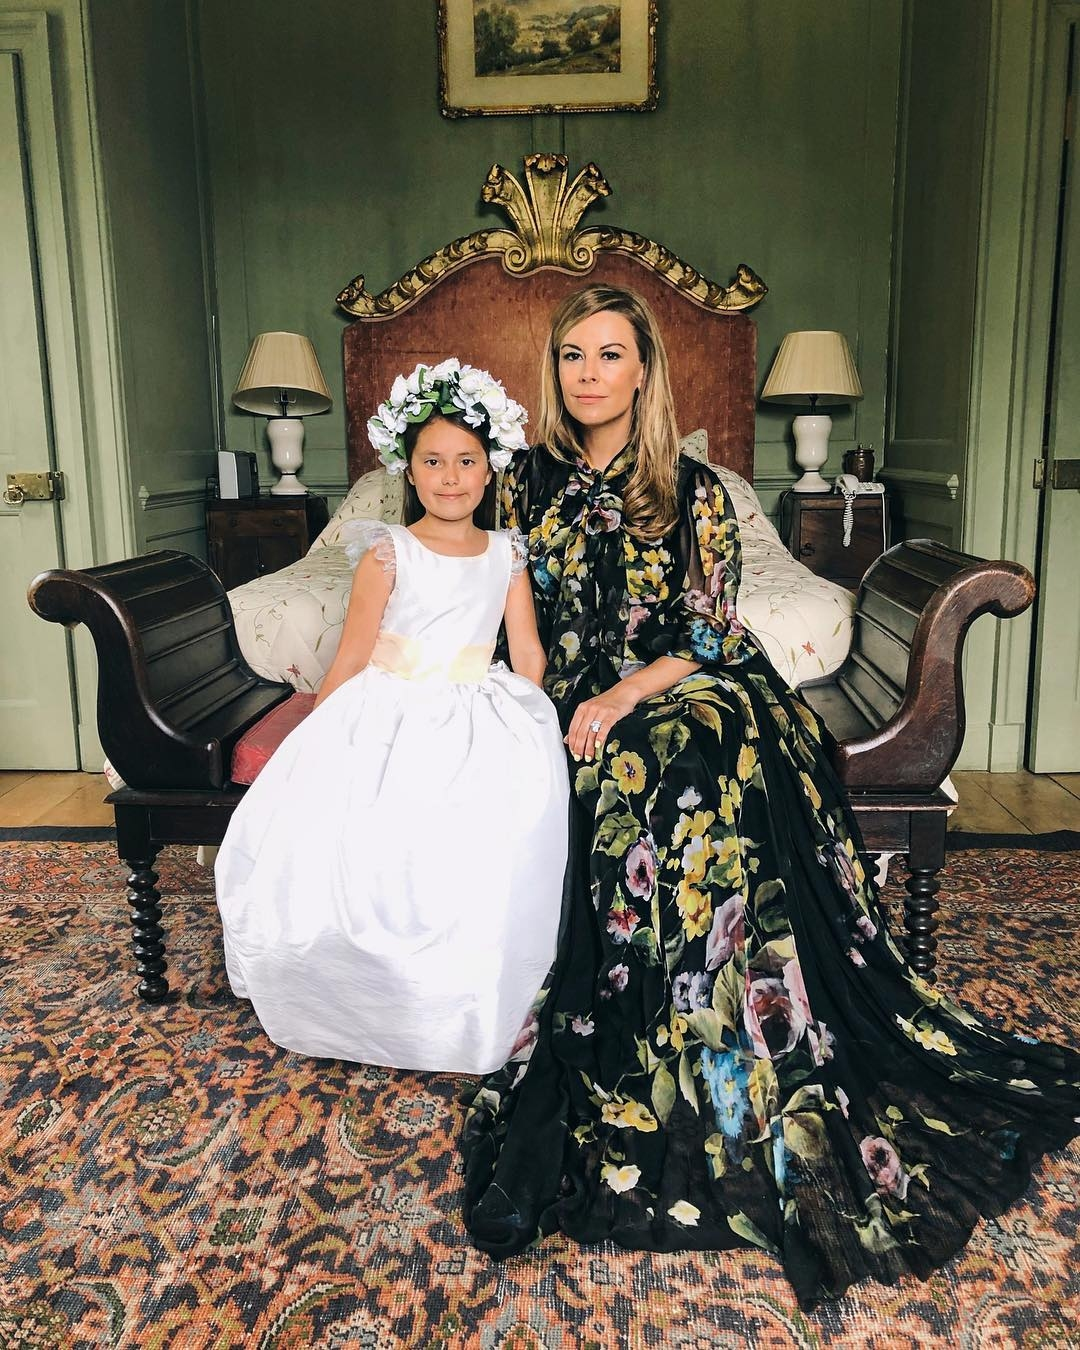 Juliet Angus posing with daughter in Little Eglantine at Millie Mackintosh wedding